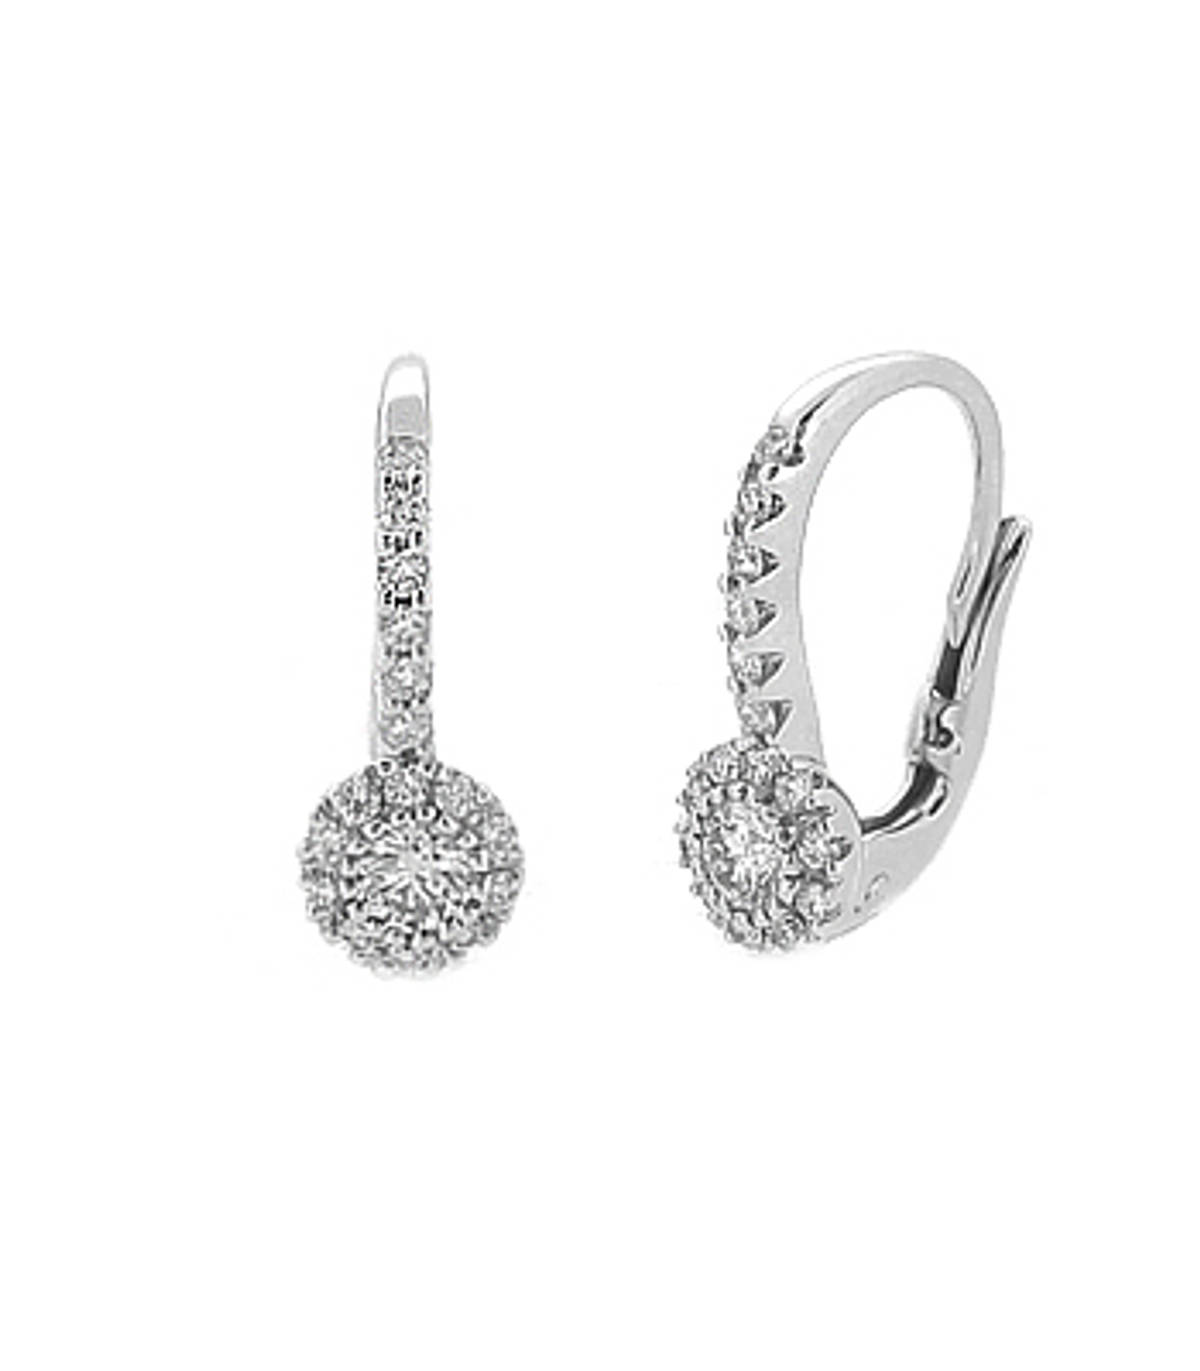 18k white gold brilliant cut diamond hoop earringsDETAILSCarat: total diamond weight 0.49cts Made in Ireland